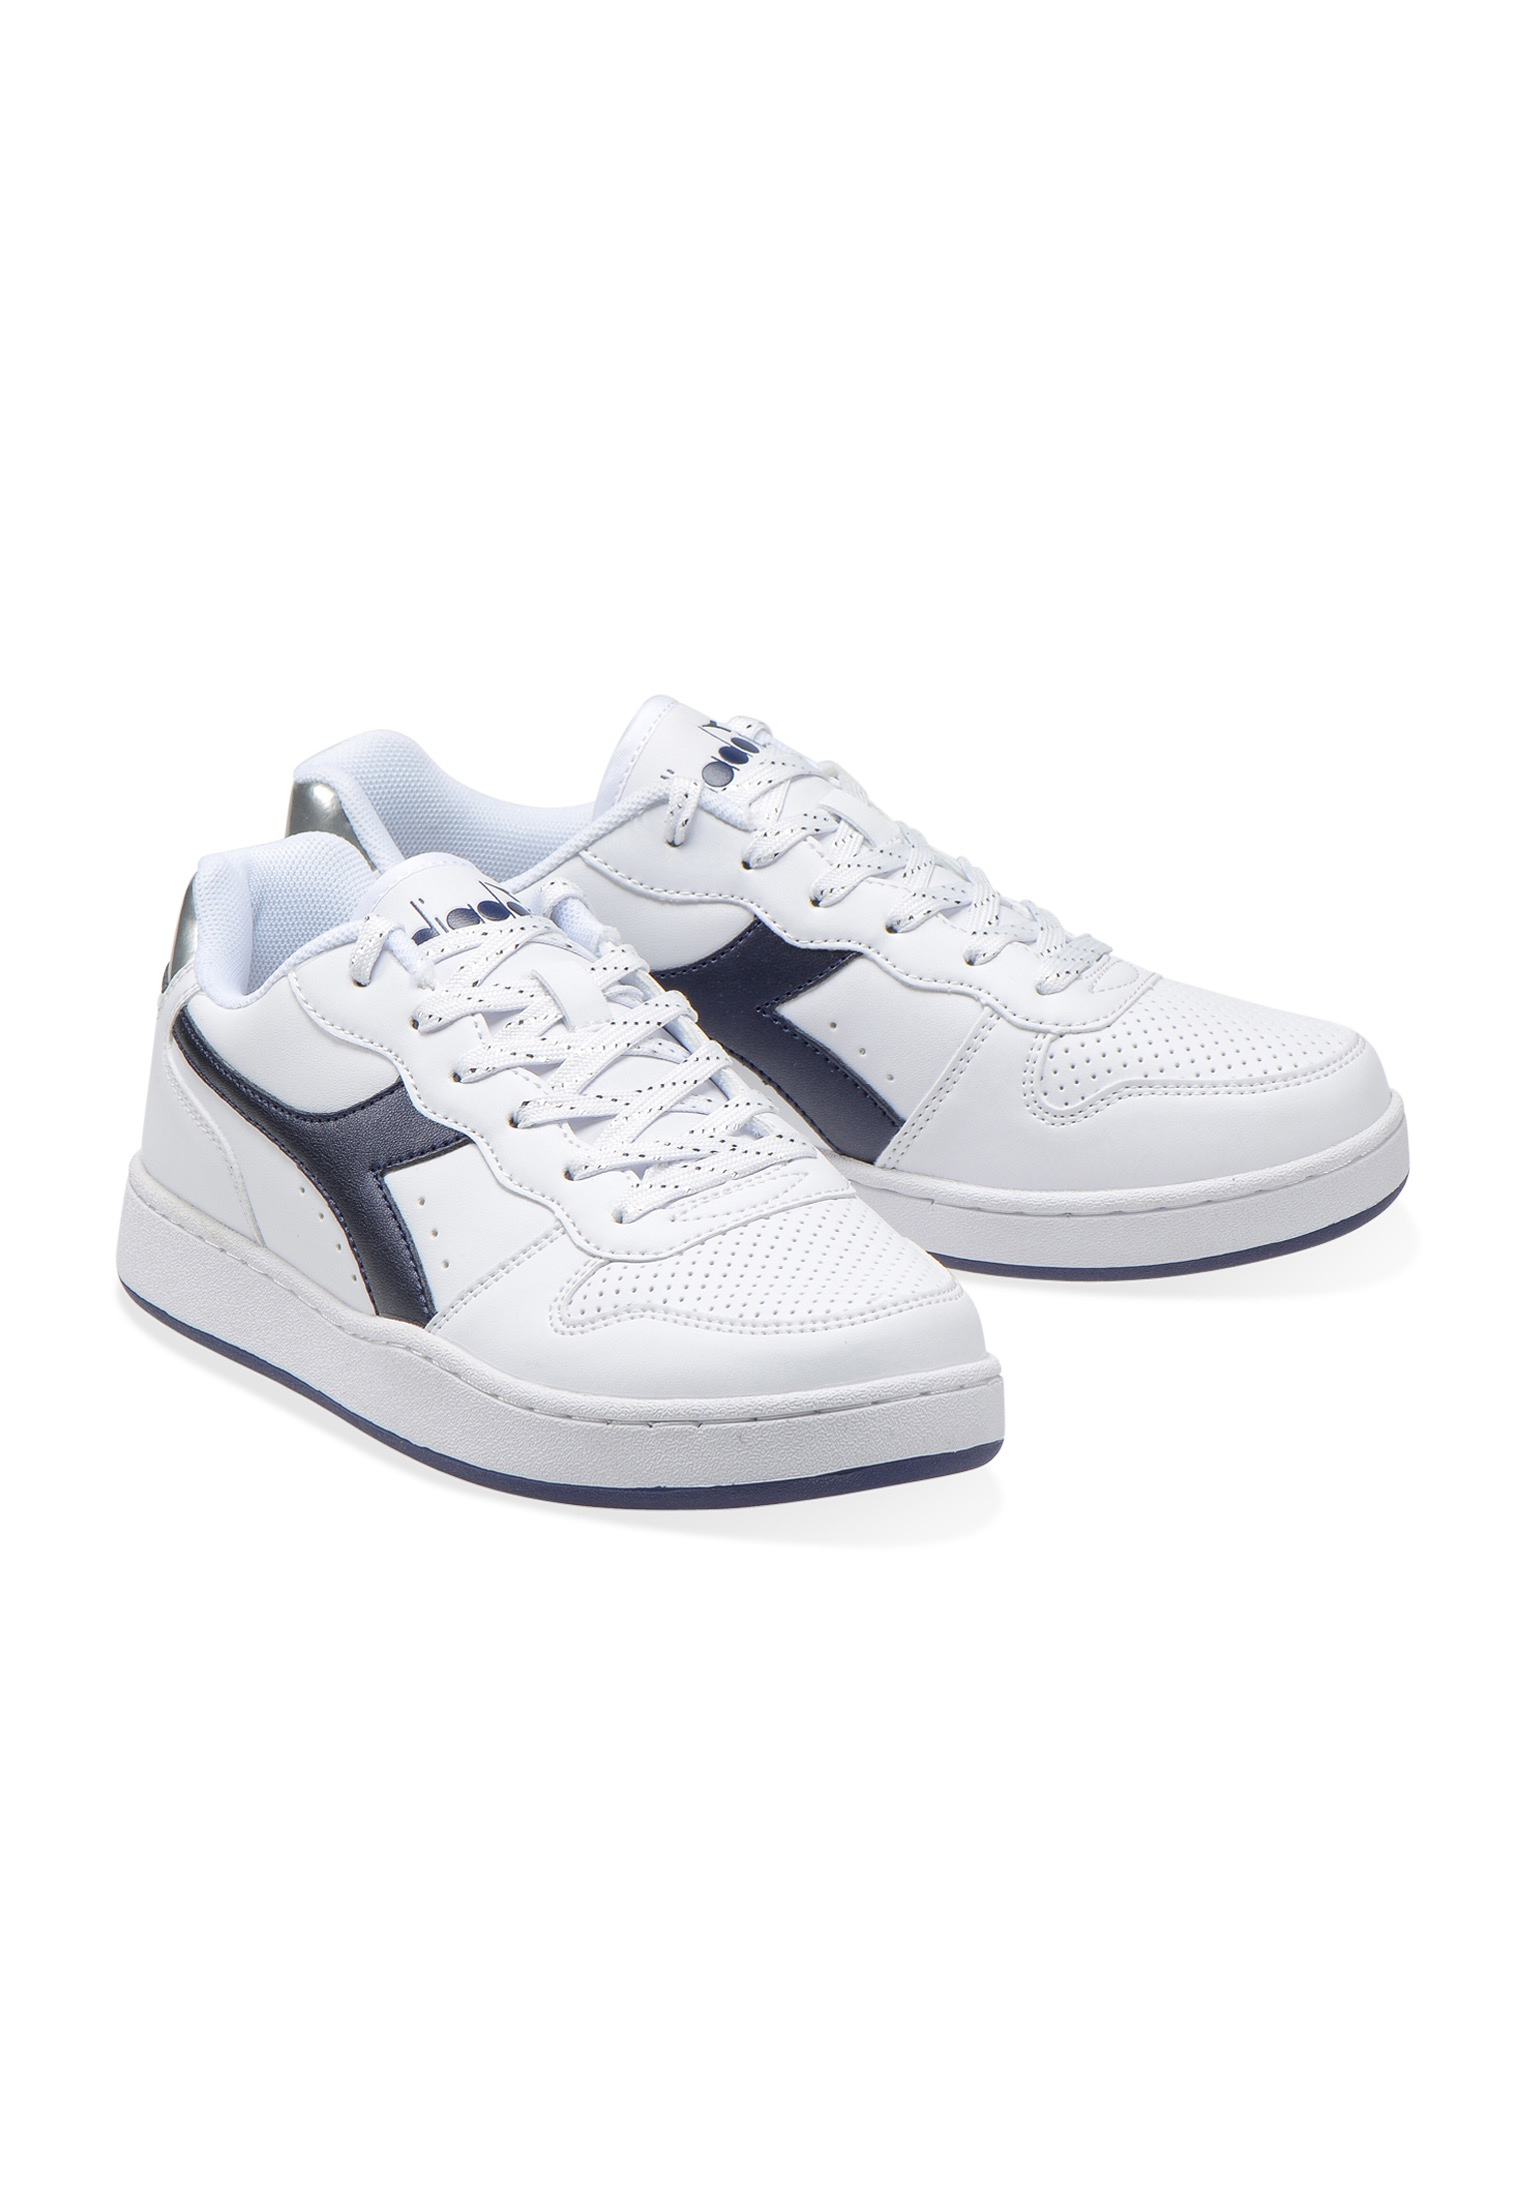 Details about Diadora Sport shoes PLAYGROUND WN for woman